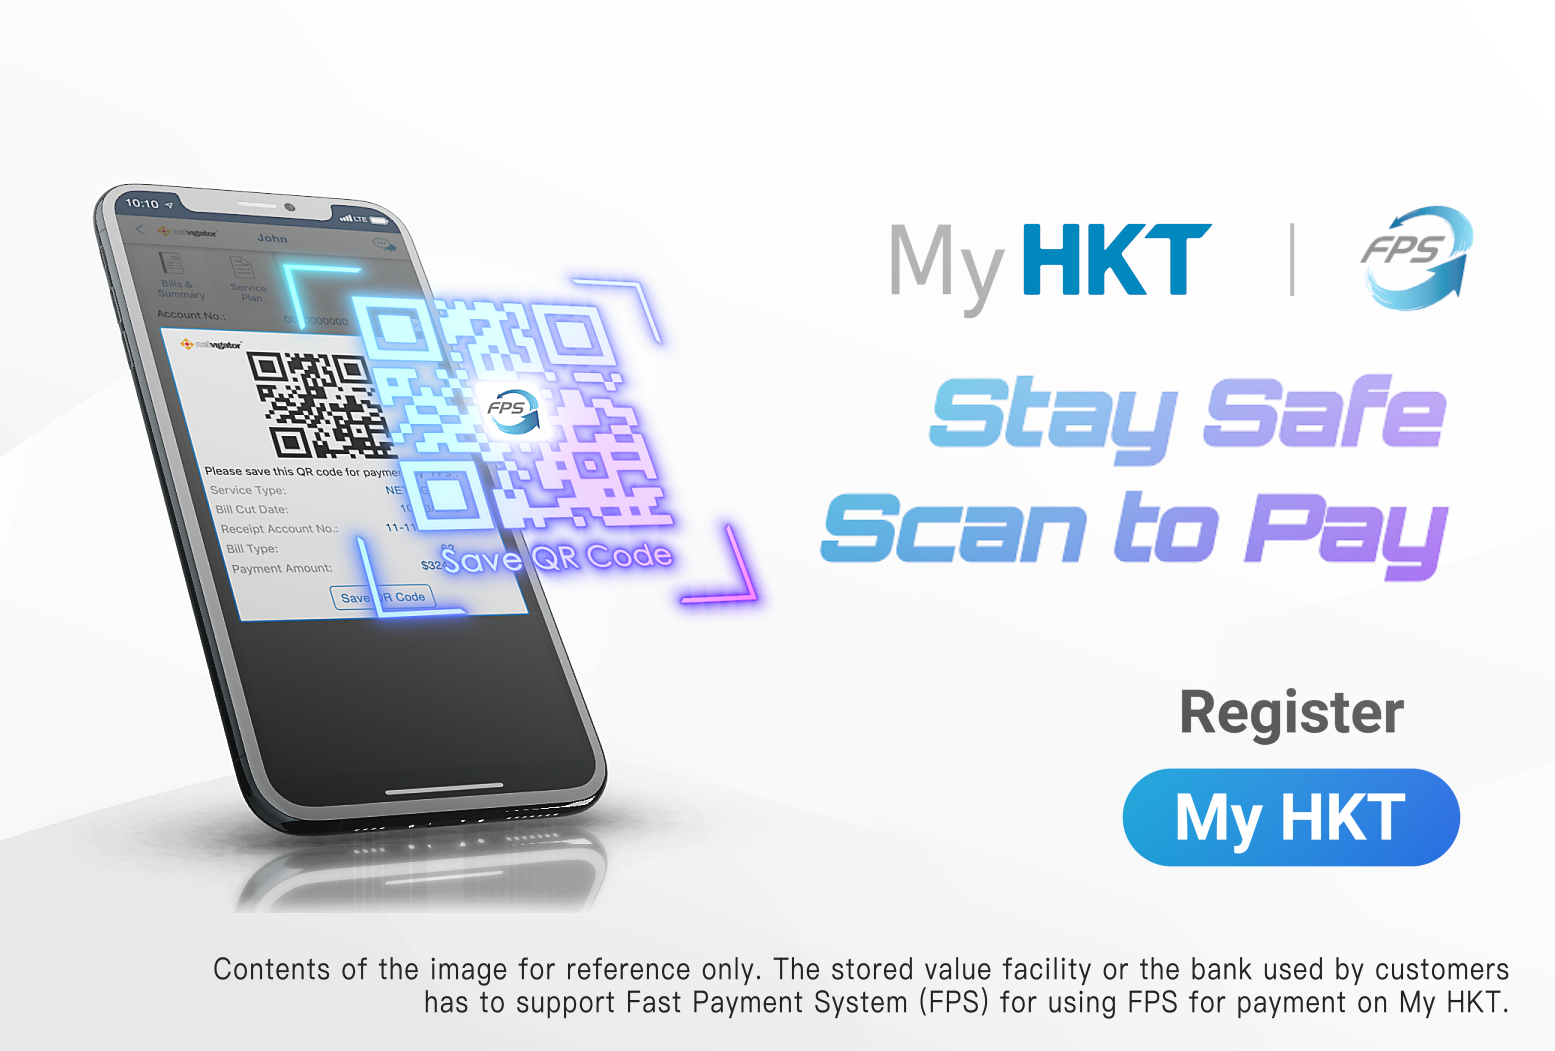 My HKT: Stay Safe Scan to Pay